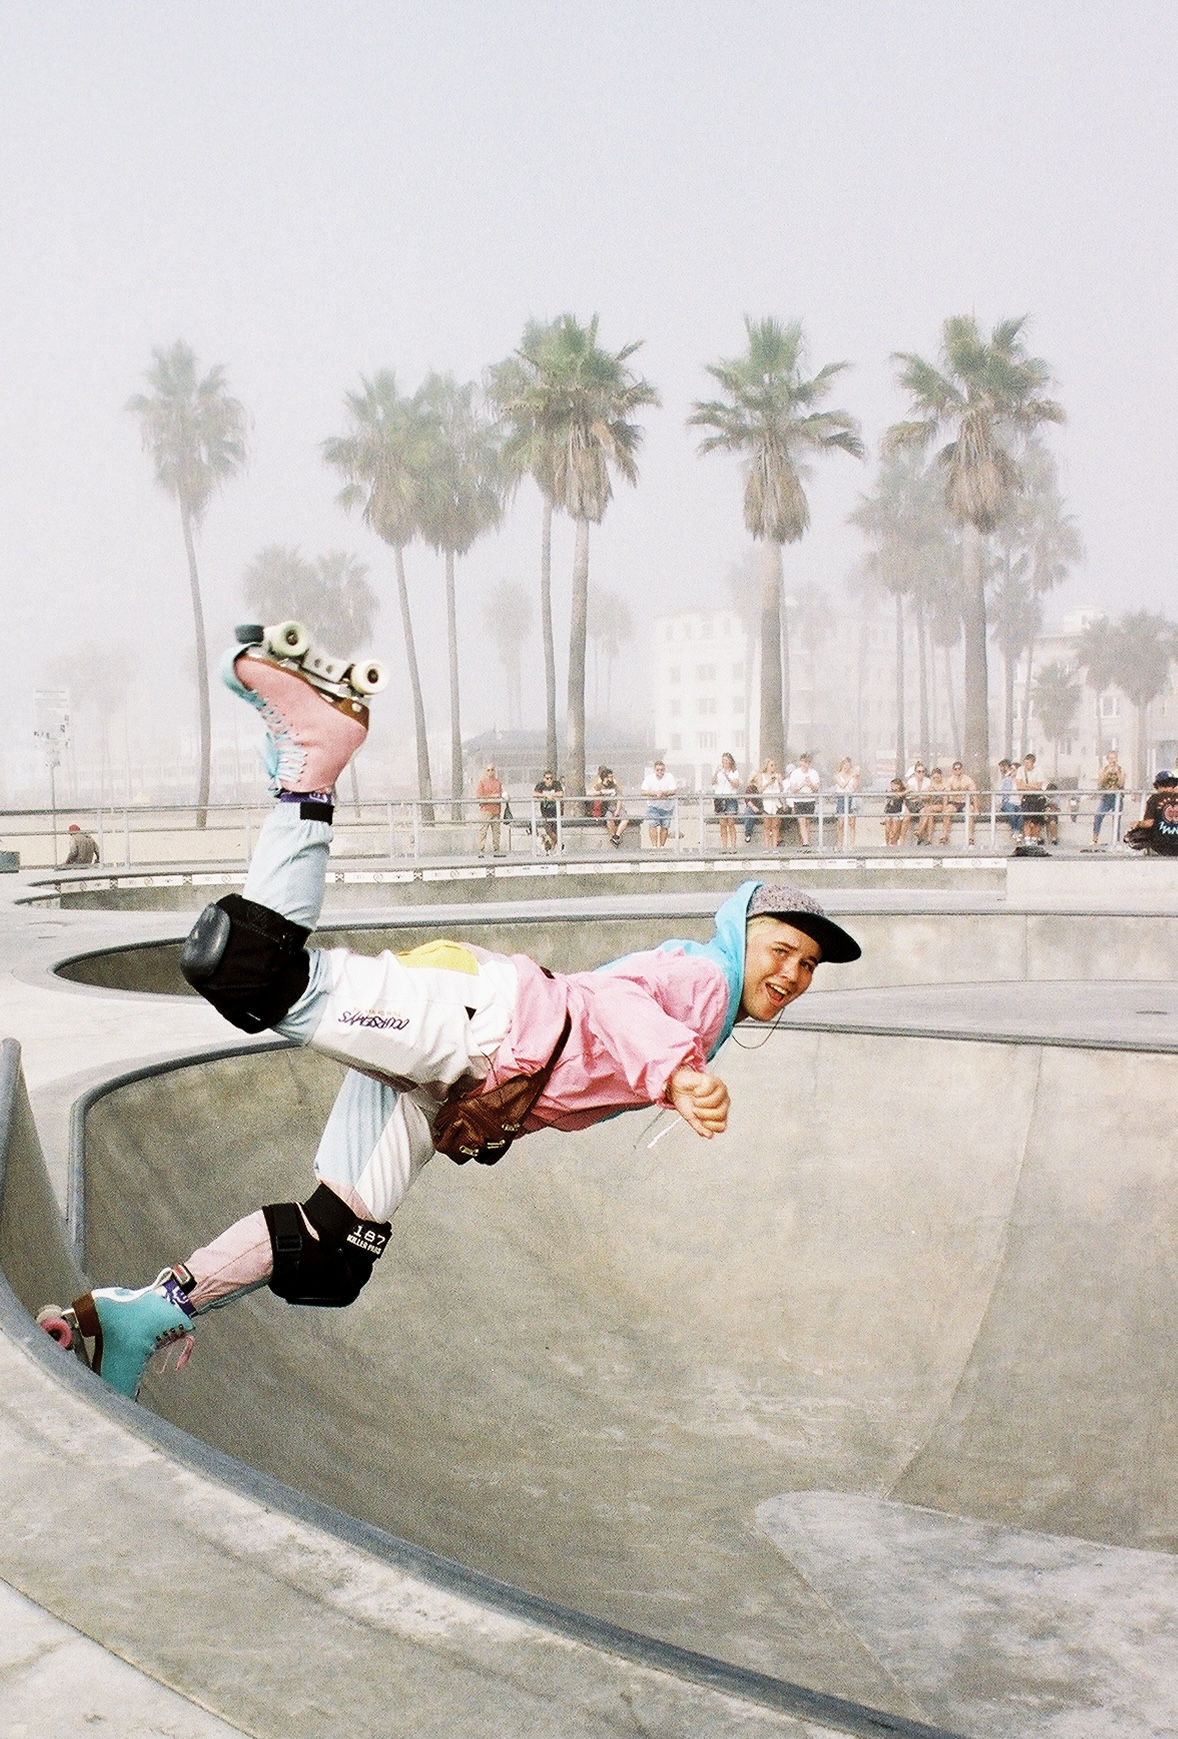 film color portrait photograph of a roller skater girl in venice beach, Los Angeles, California, USA by Morgan Simmons